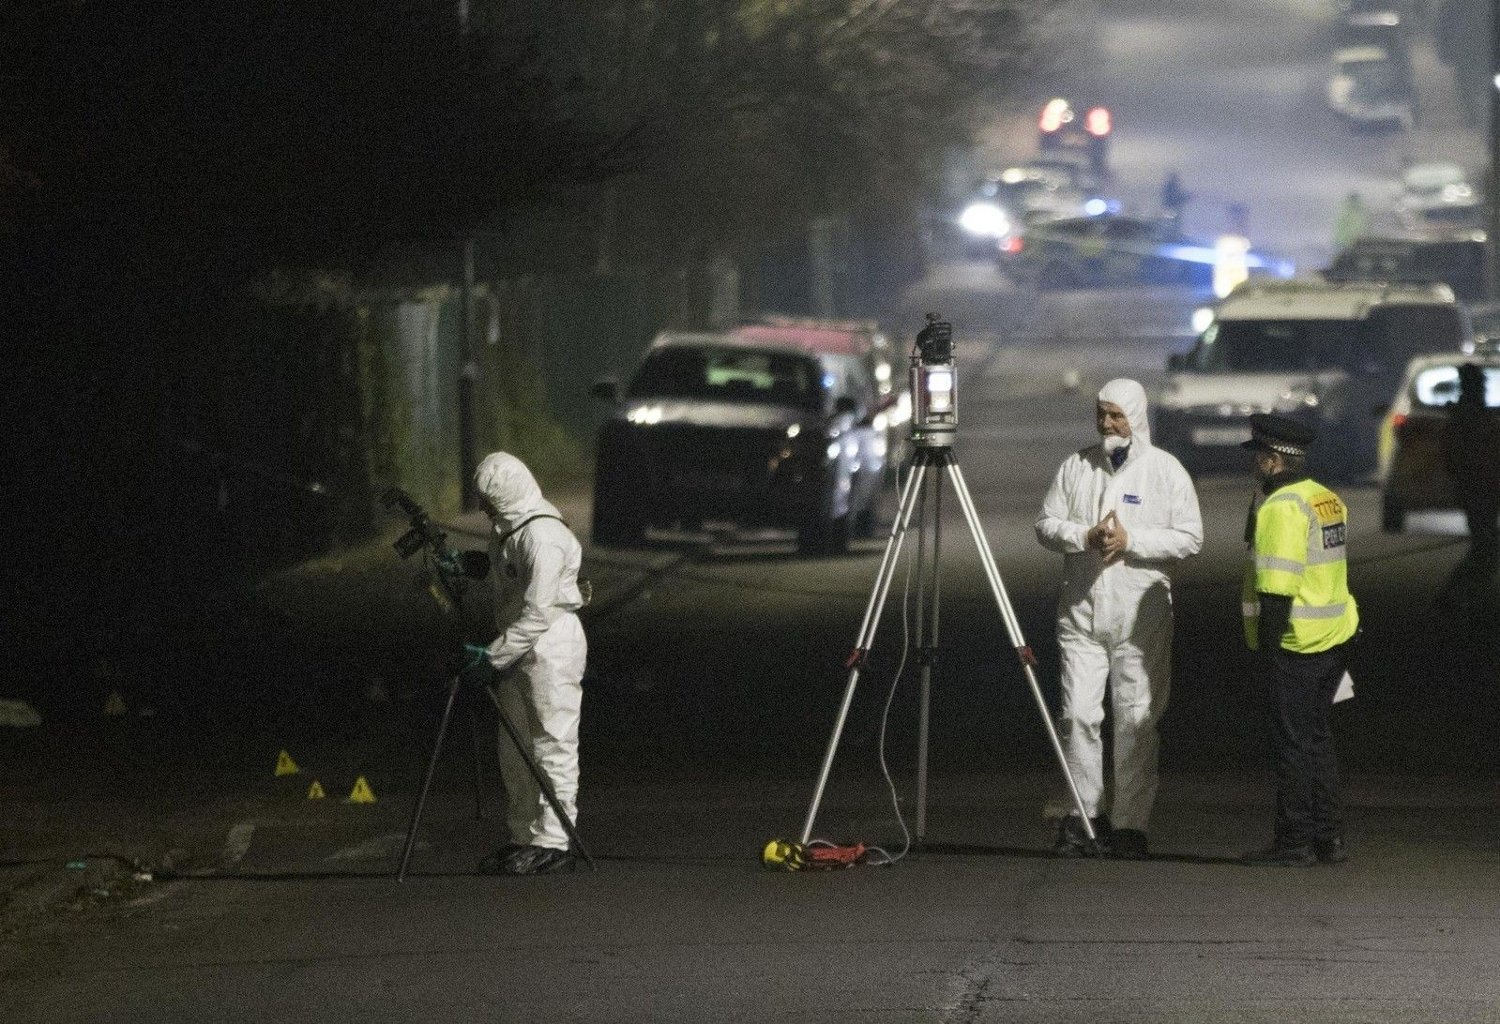 Hit and run outside Essex school Forensic Officers in Willingdale Road near Debden Park High School, in Loughton, Essex, after a murder investigation was launched after a 12-year-old boy was killed when a car crashed into children. Police are searching for a silver Ford Ka believed to have been involved in the fatal collision